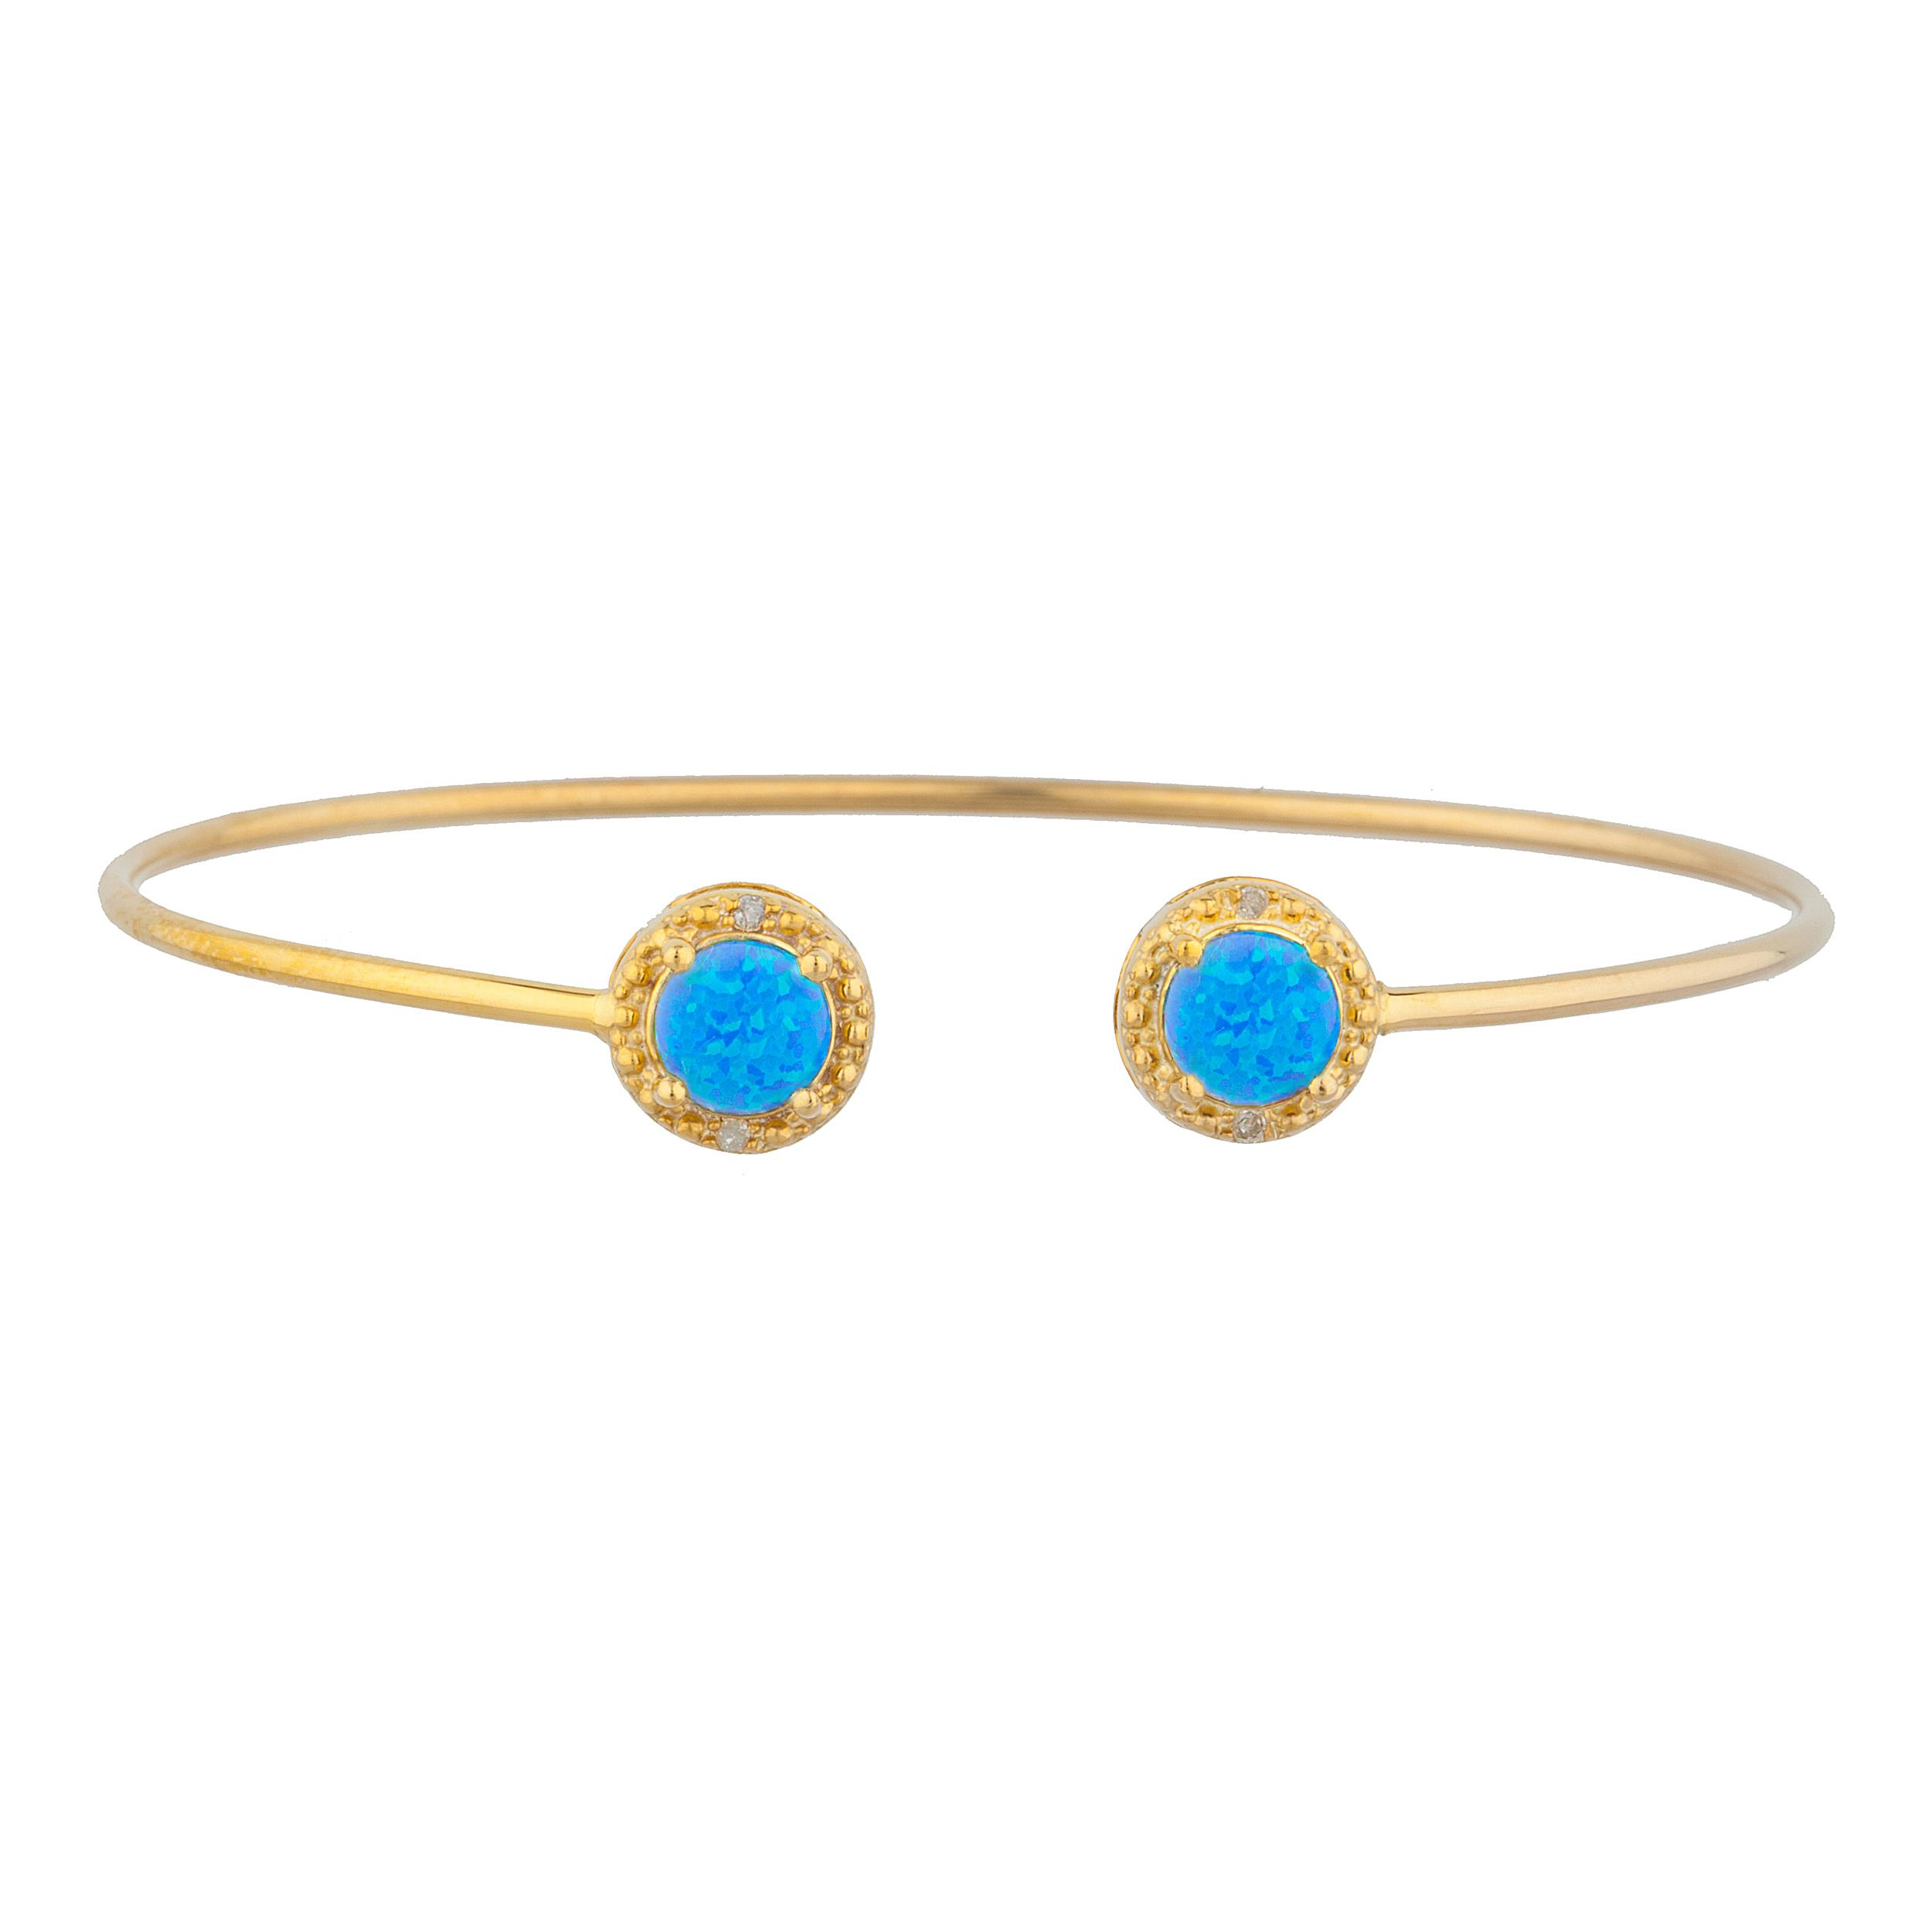 14Kt Yellow Gold Plated Blue Opal & Diamond Round Bangle Bracelet by Elizabeth Jewelry Inc